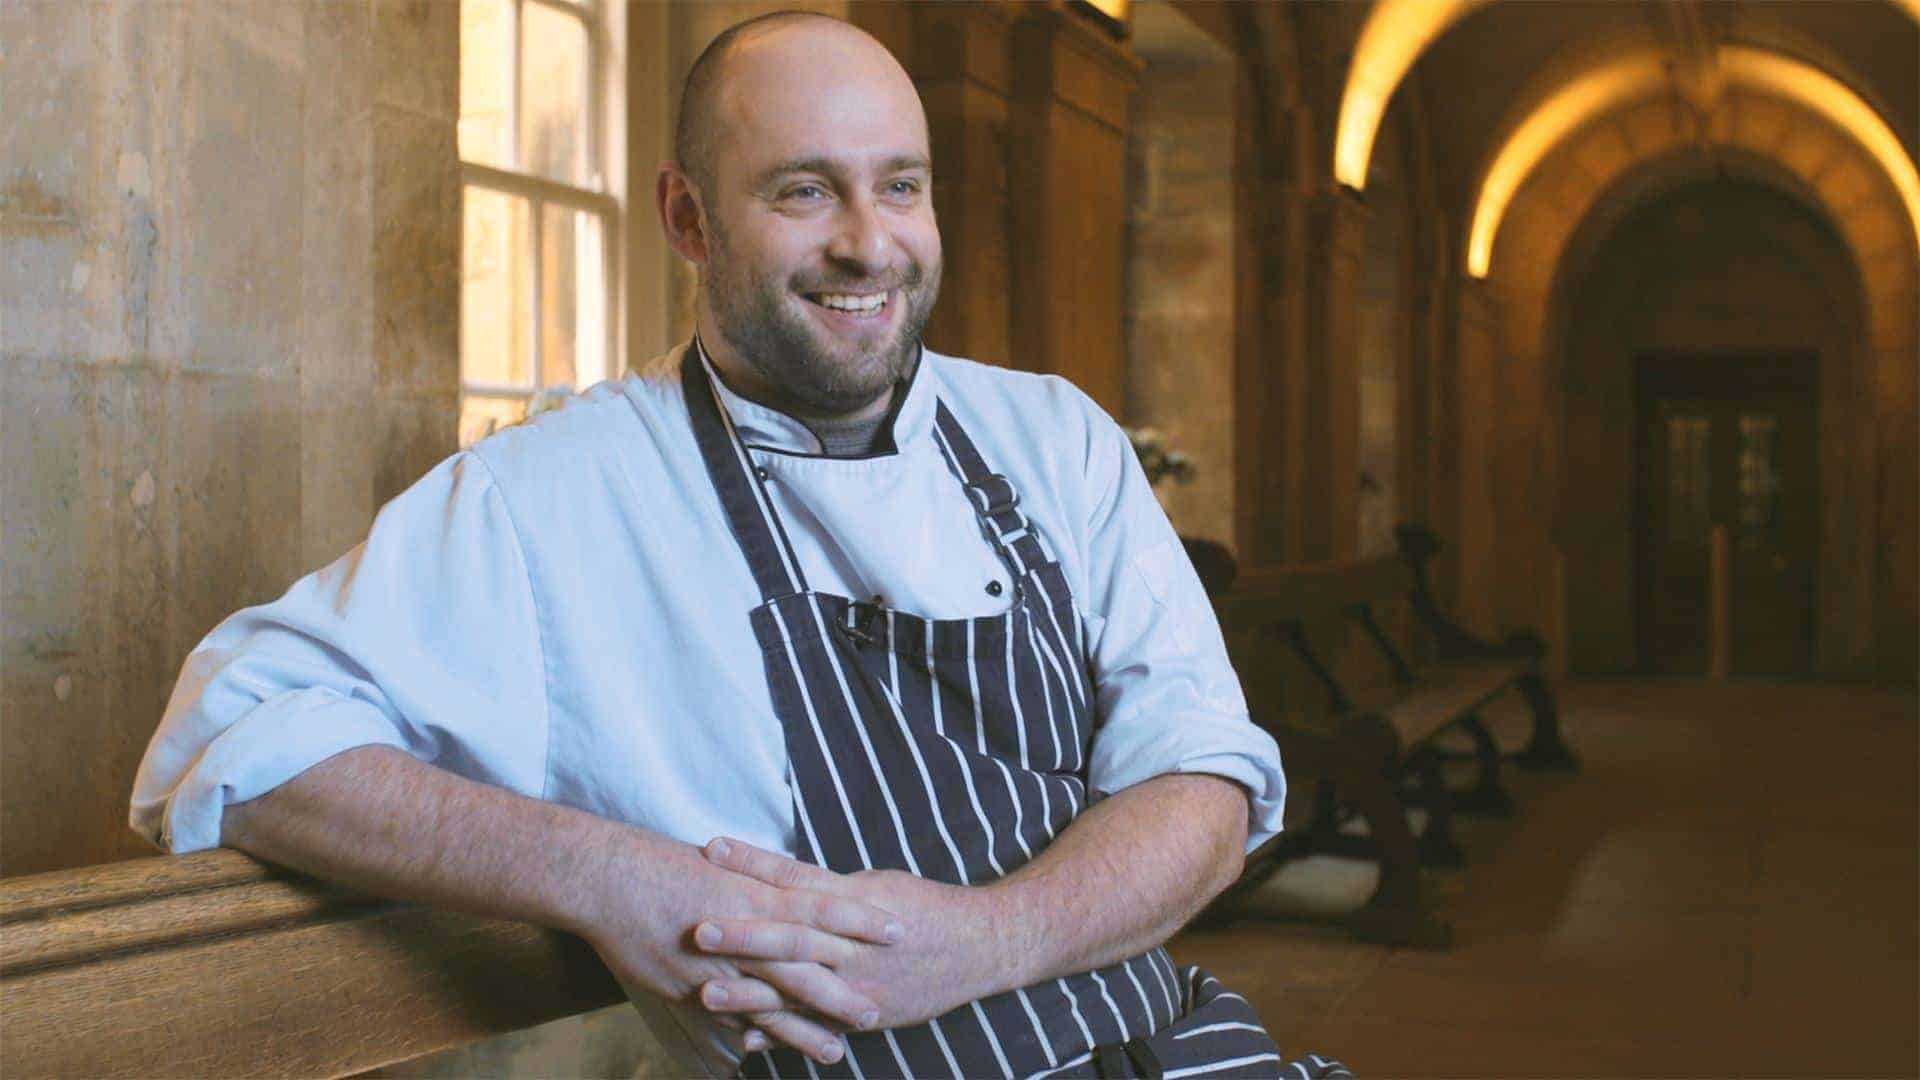 Castle Howard Head Chef Interview